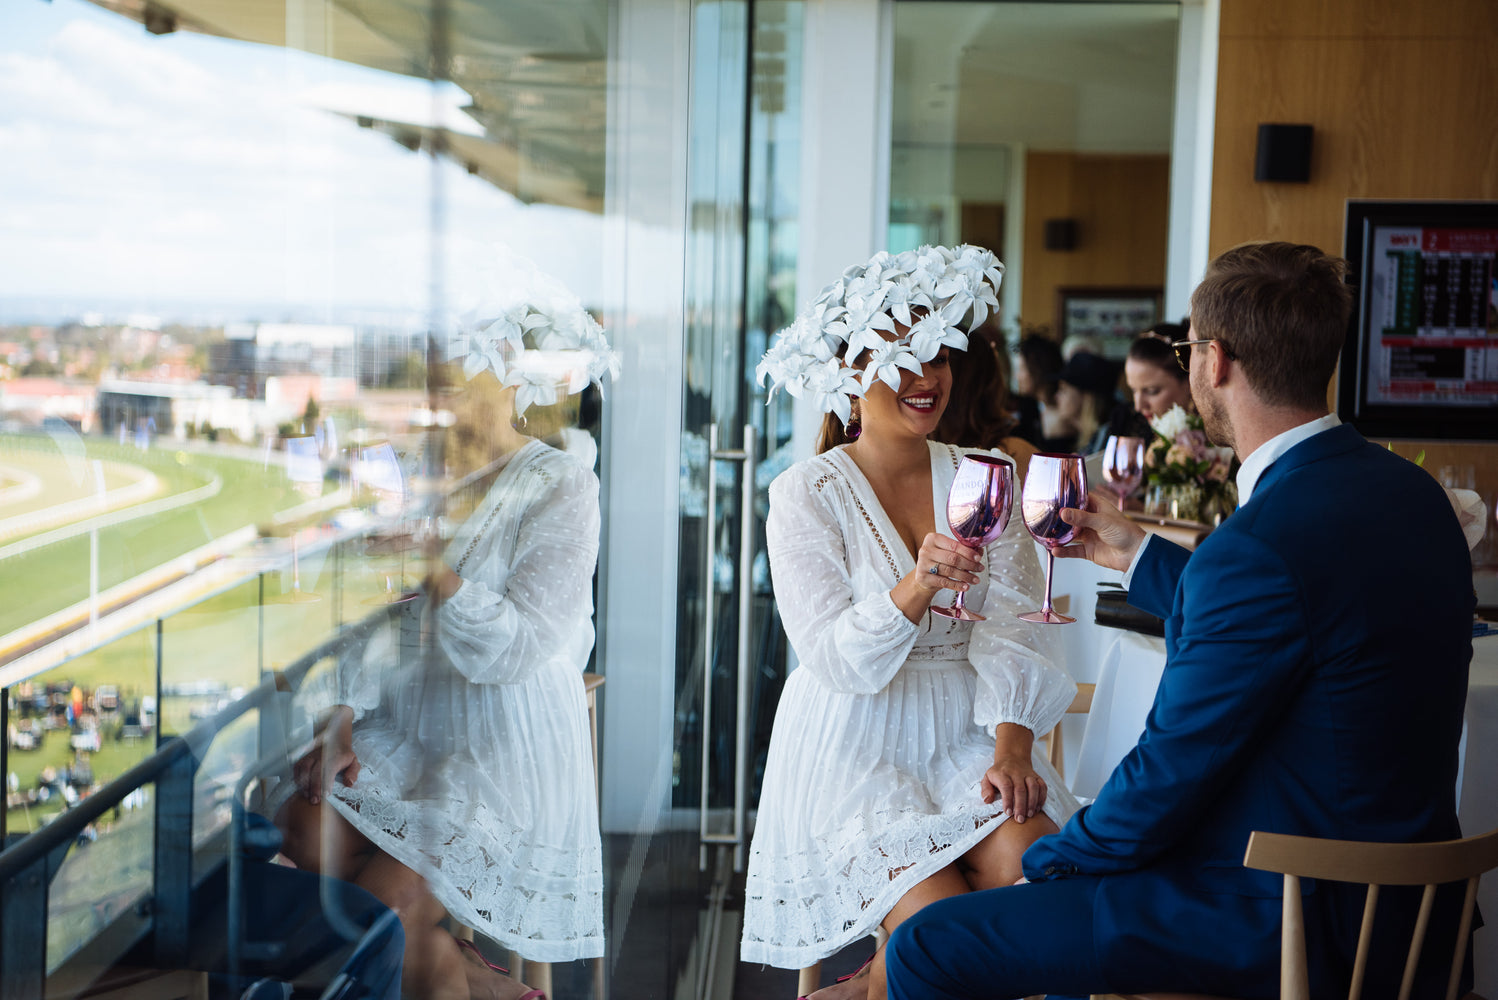 Private Suites - The Championships Day 1 - Randwick Racecourse